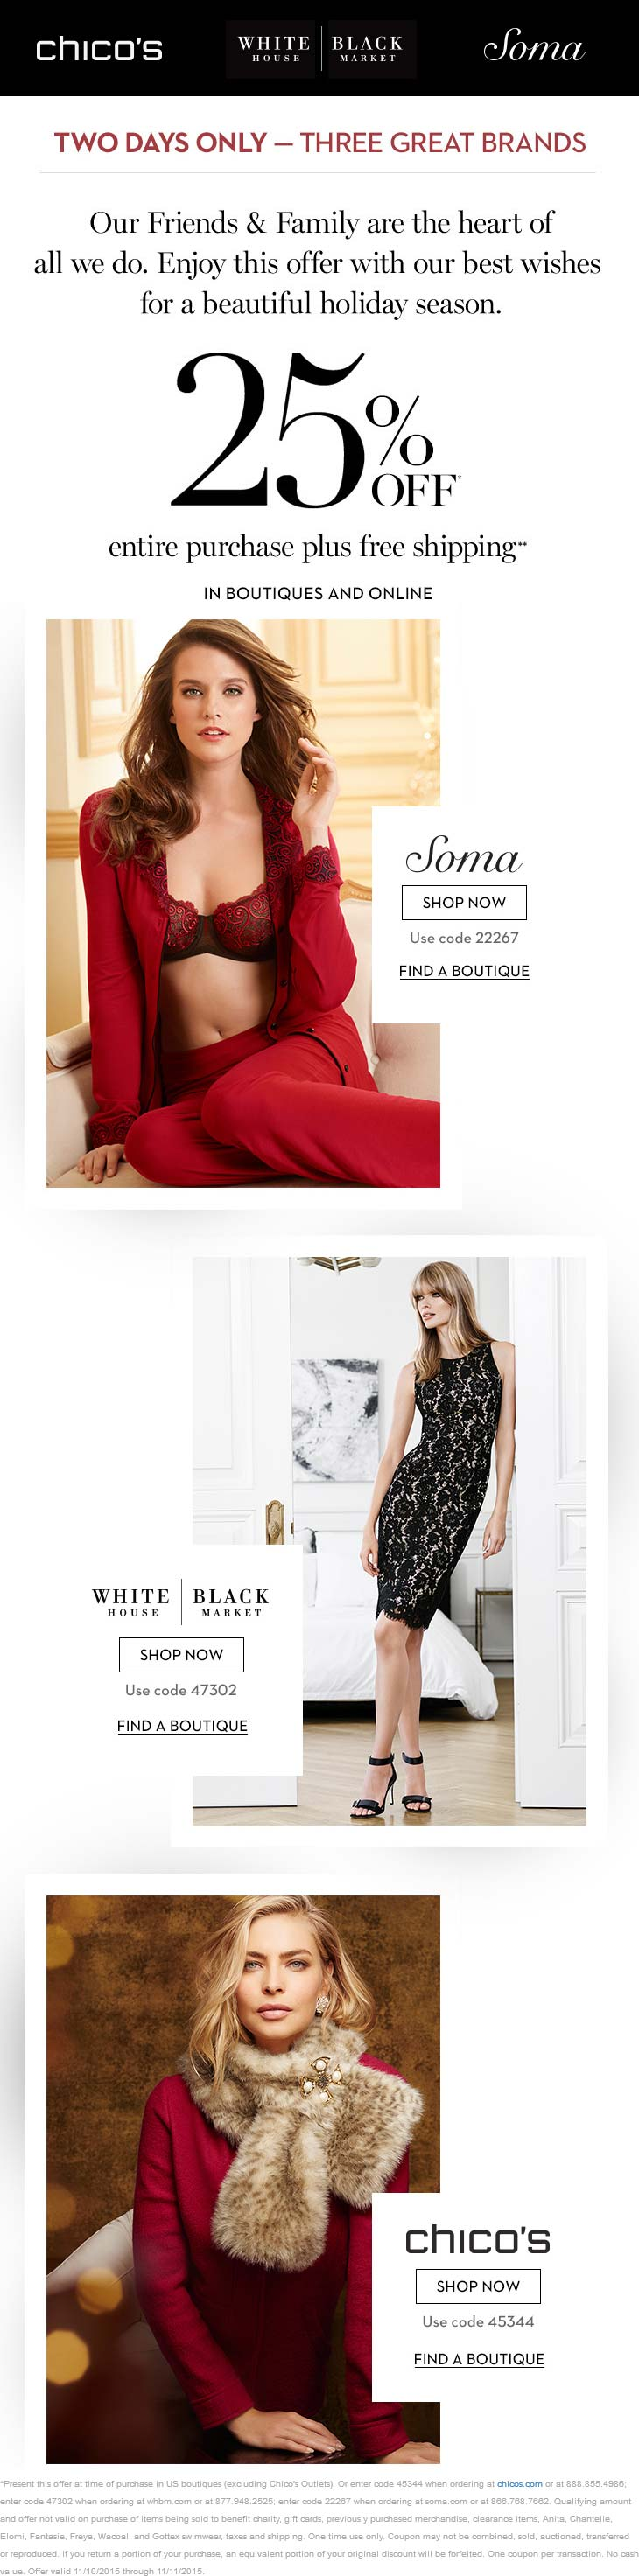 Chicos Coupon December 2018 25% off at Chicos, White House Black Market & Soma, also online